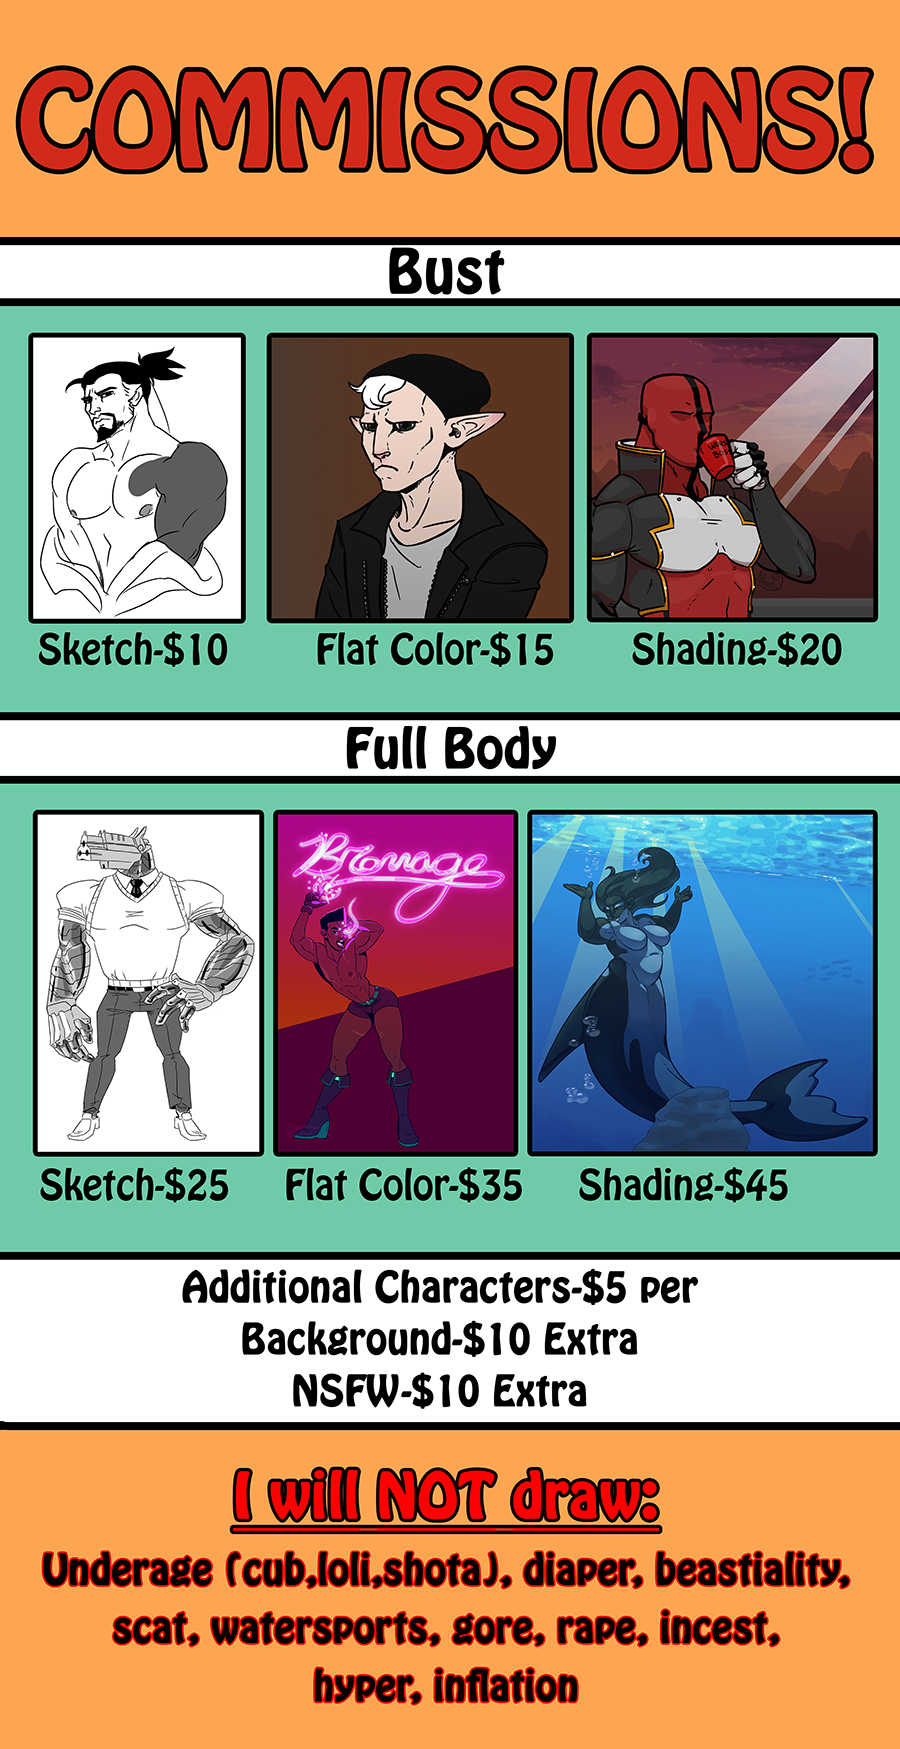 Most recent image: Commissions!